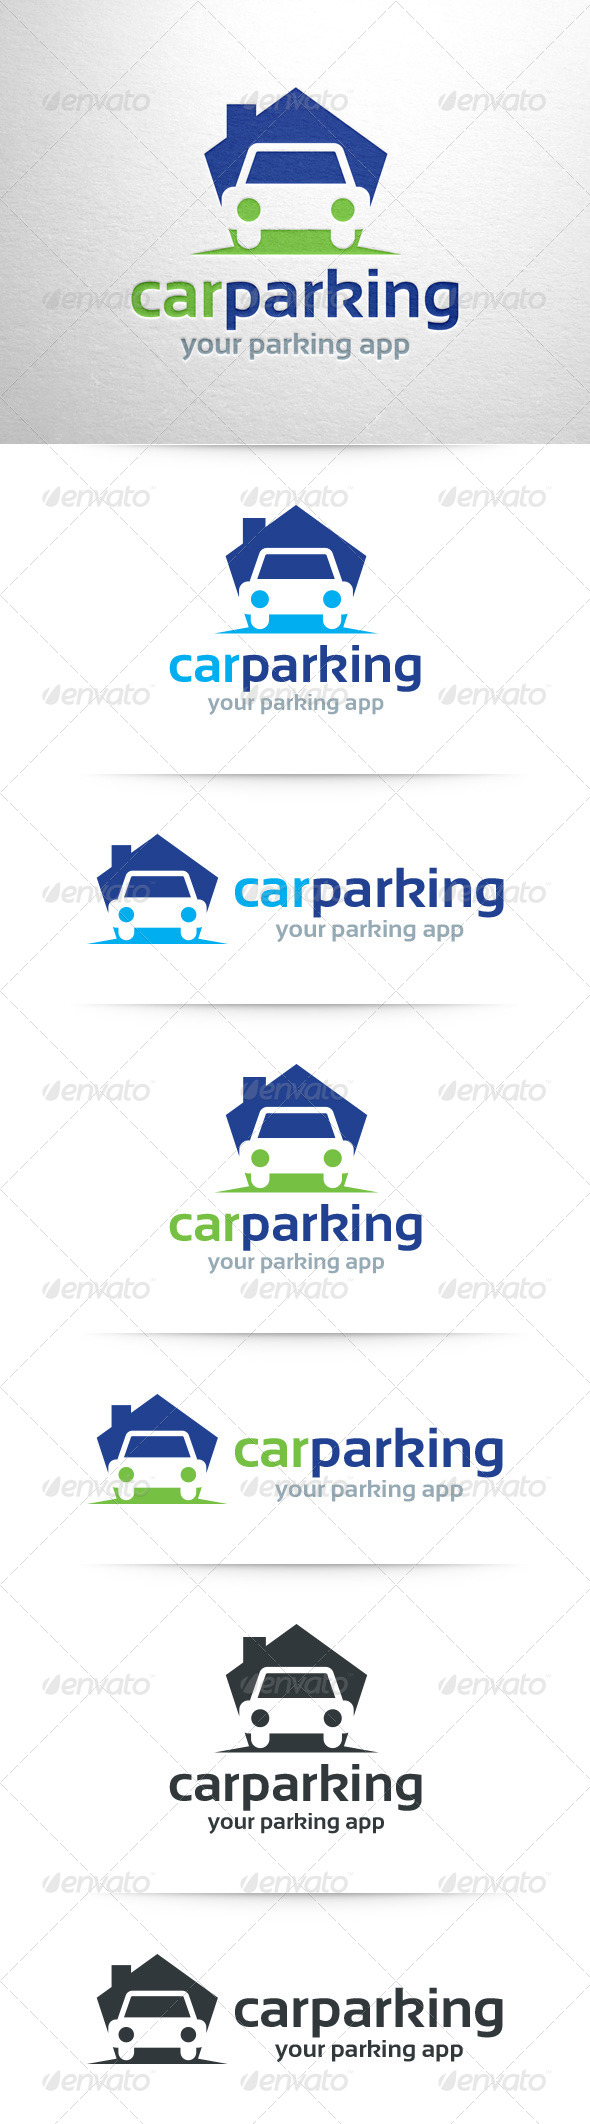 Car parking logo template by liveatthebbq graphicriver car parking logo template objects logo templates maxwellsz